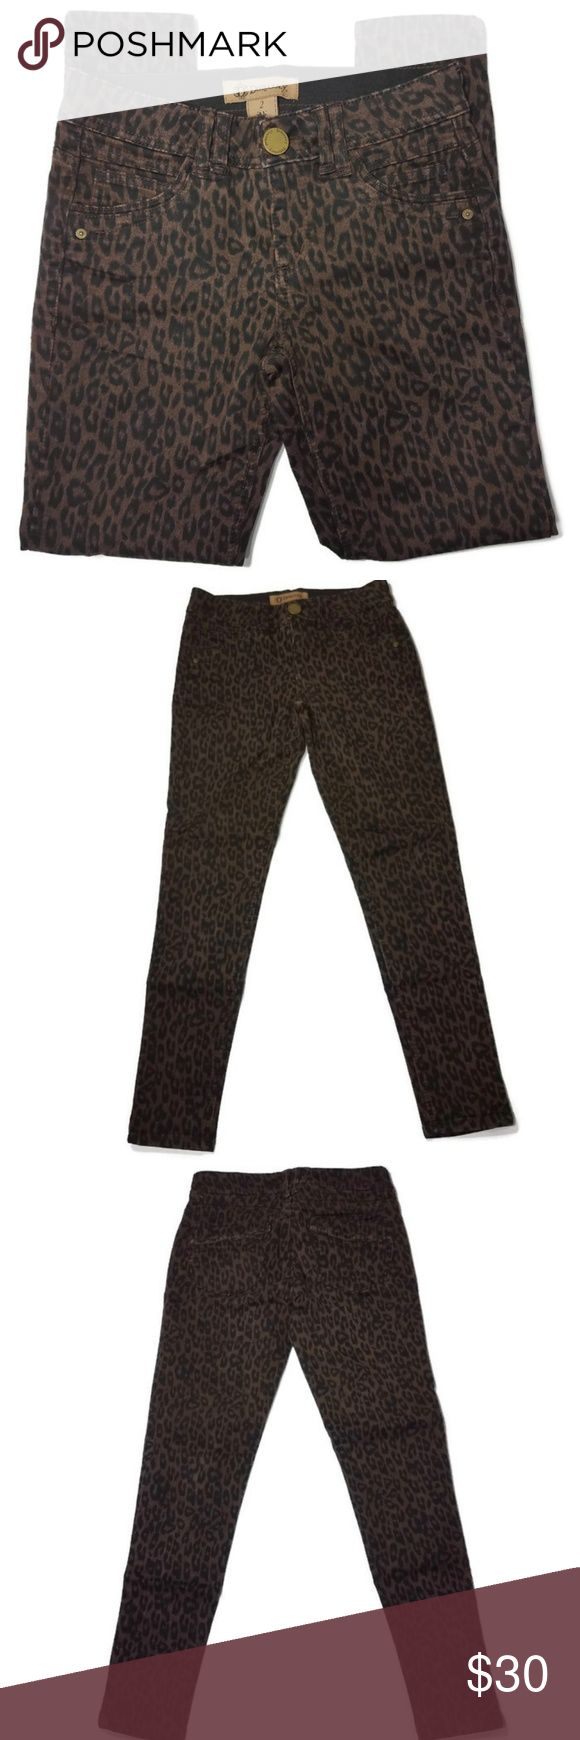 "Democracy Skinny Jeans Leopard Brown Black Ab 2 Democracy Jeans Skinny stretch jeans with ""Ab"" Technology. Wide elastic waist for slenderizing and smo…"